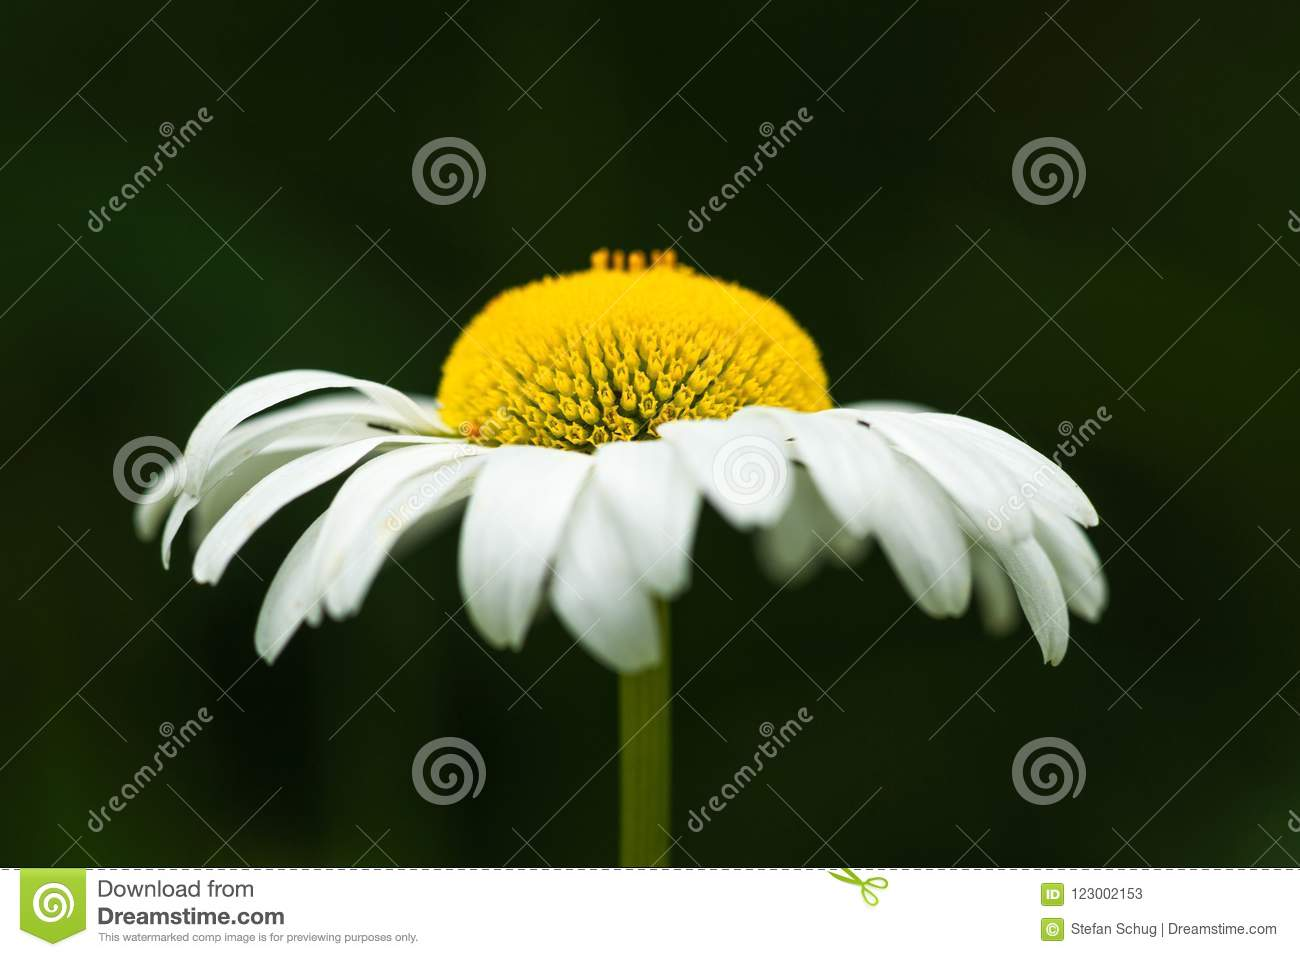 Side view daisy flower stock image image of blossom 123002153 download side view daisy flower stock image image of blossom 123002153 izmirmasajfo